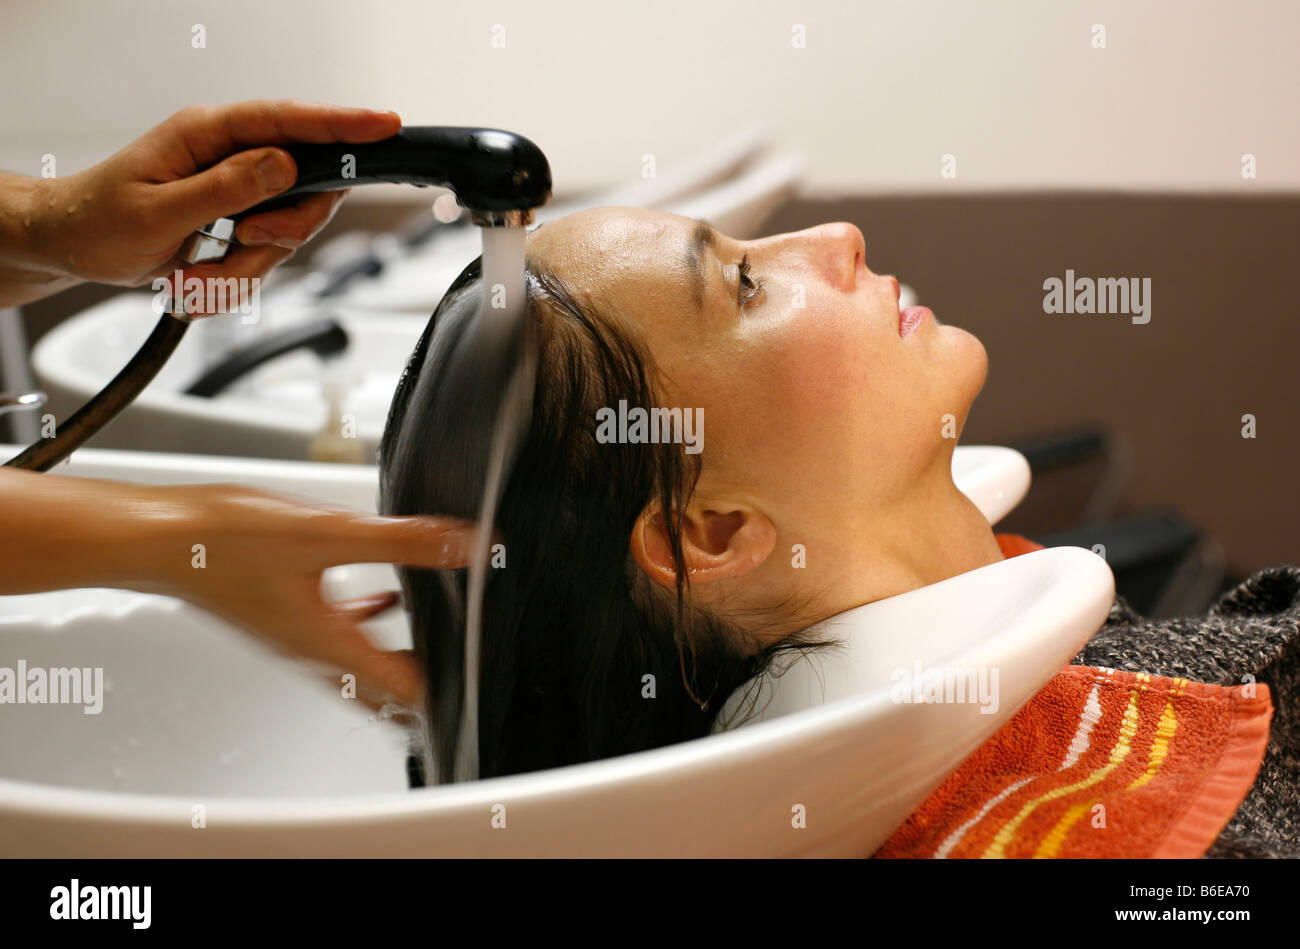 Young Woman Having Her Hair Washed Before Haircut Stock Photo